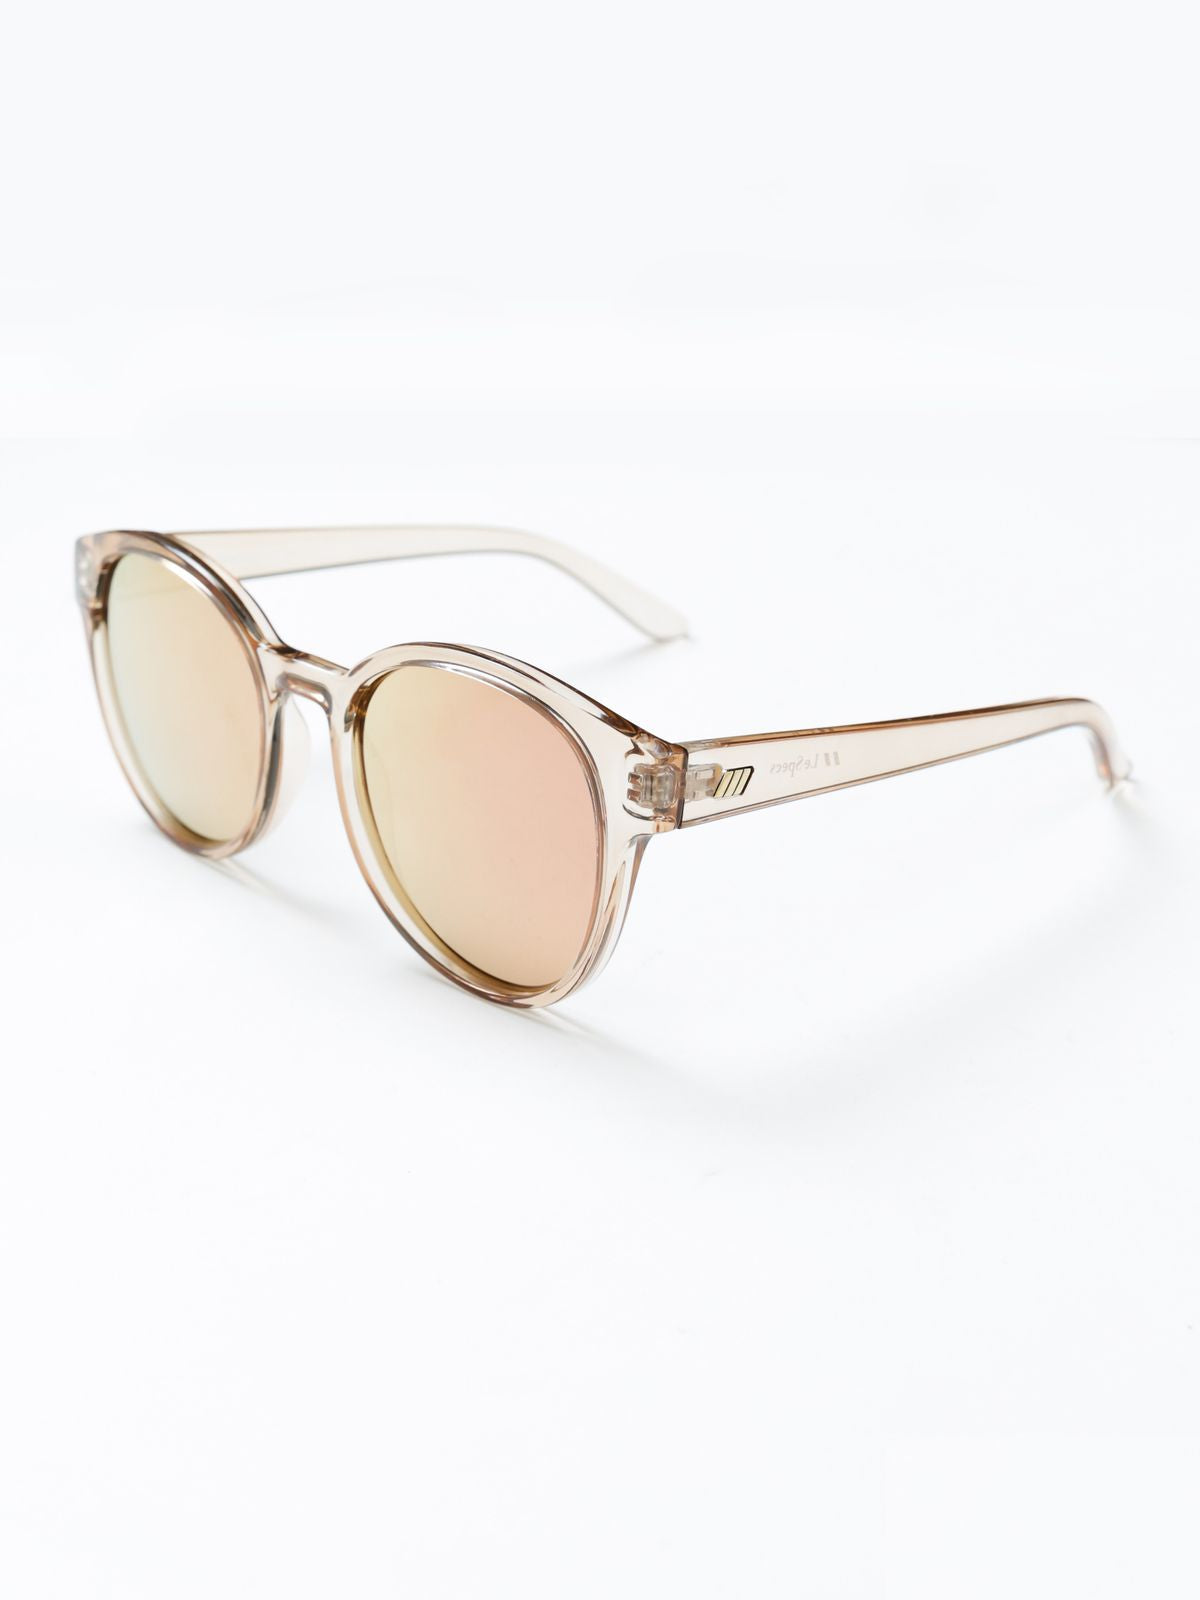 Womens Paramount Sunglasses in Peach Tan